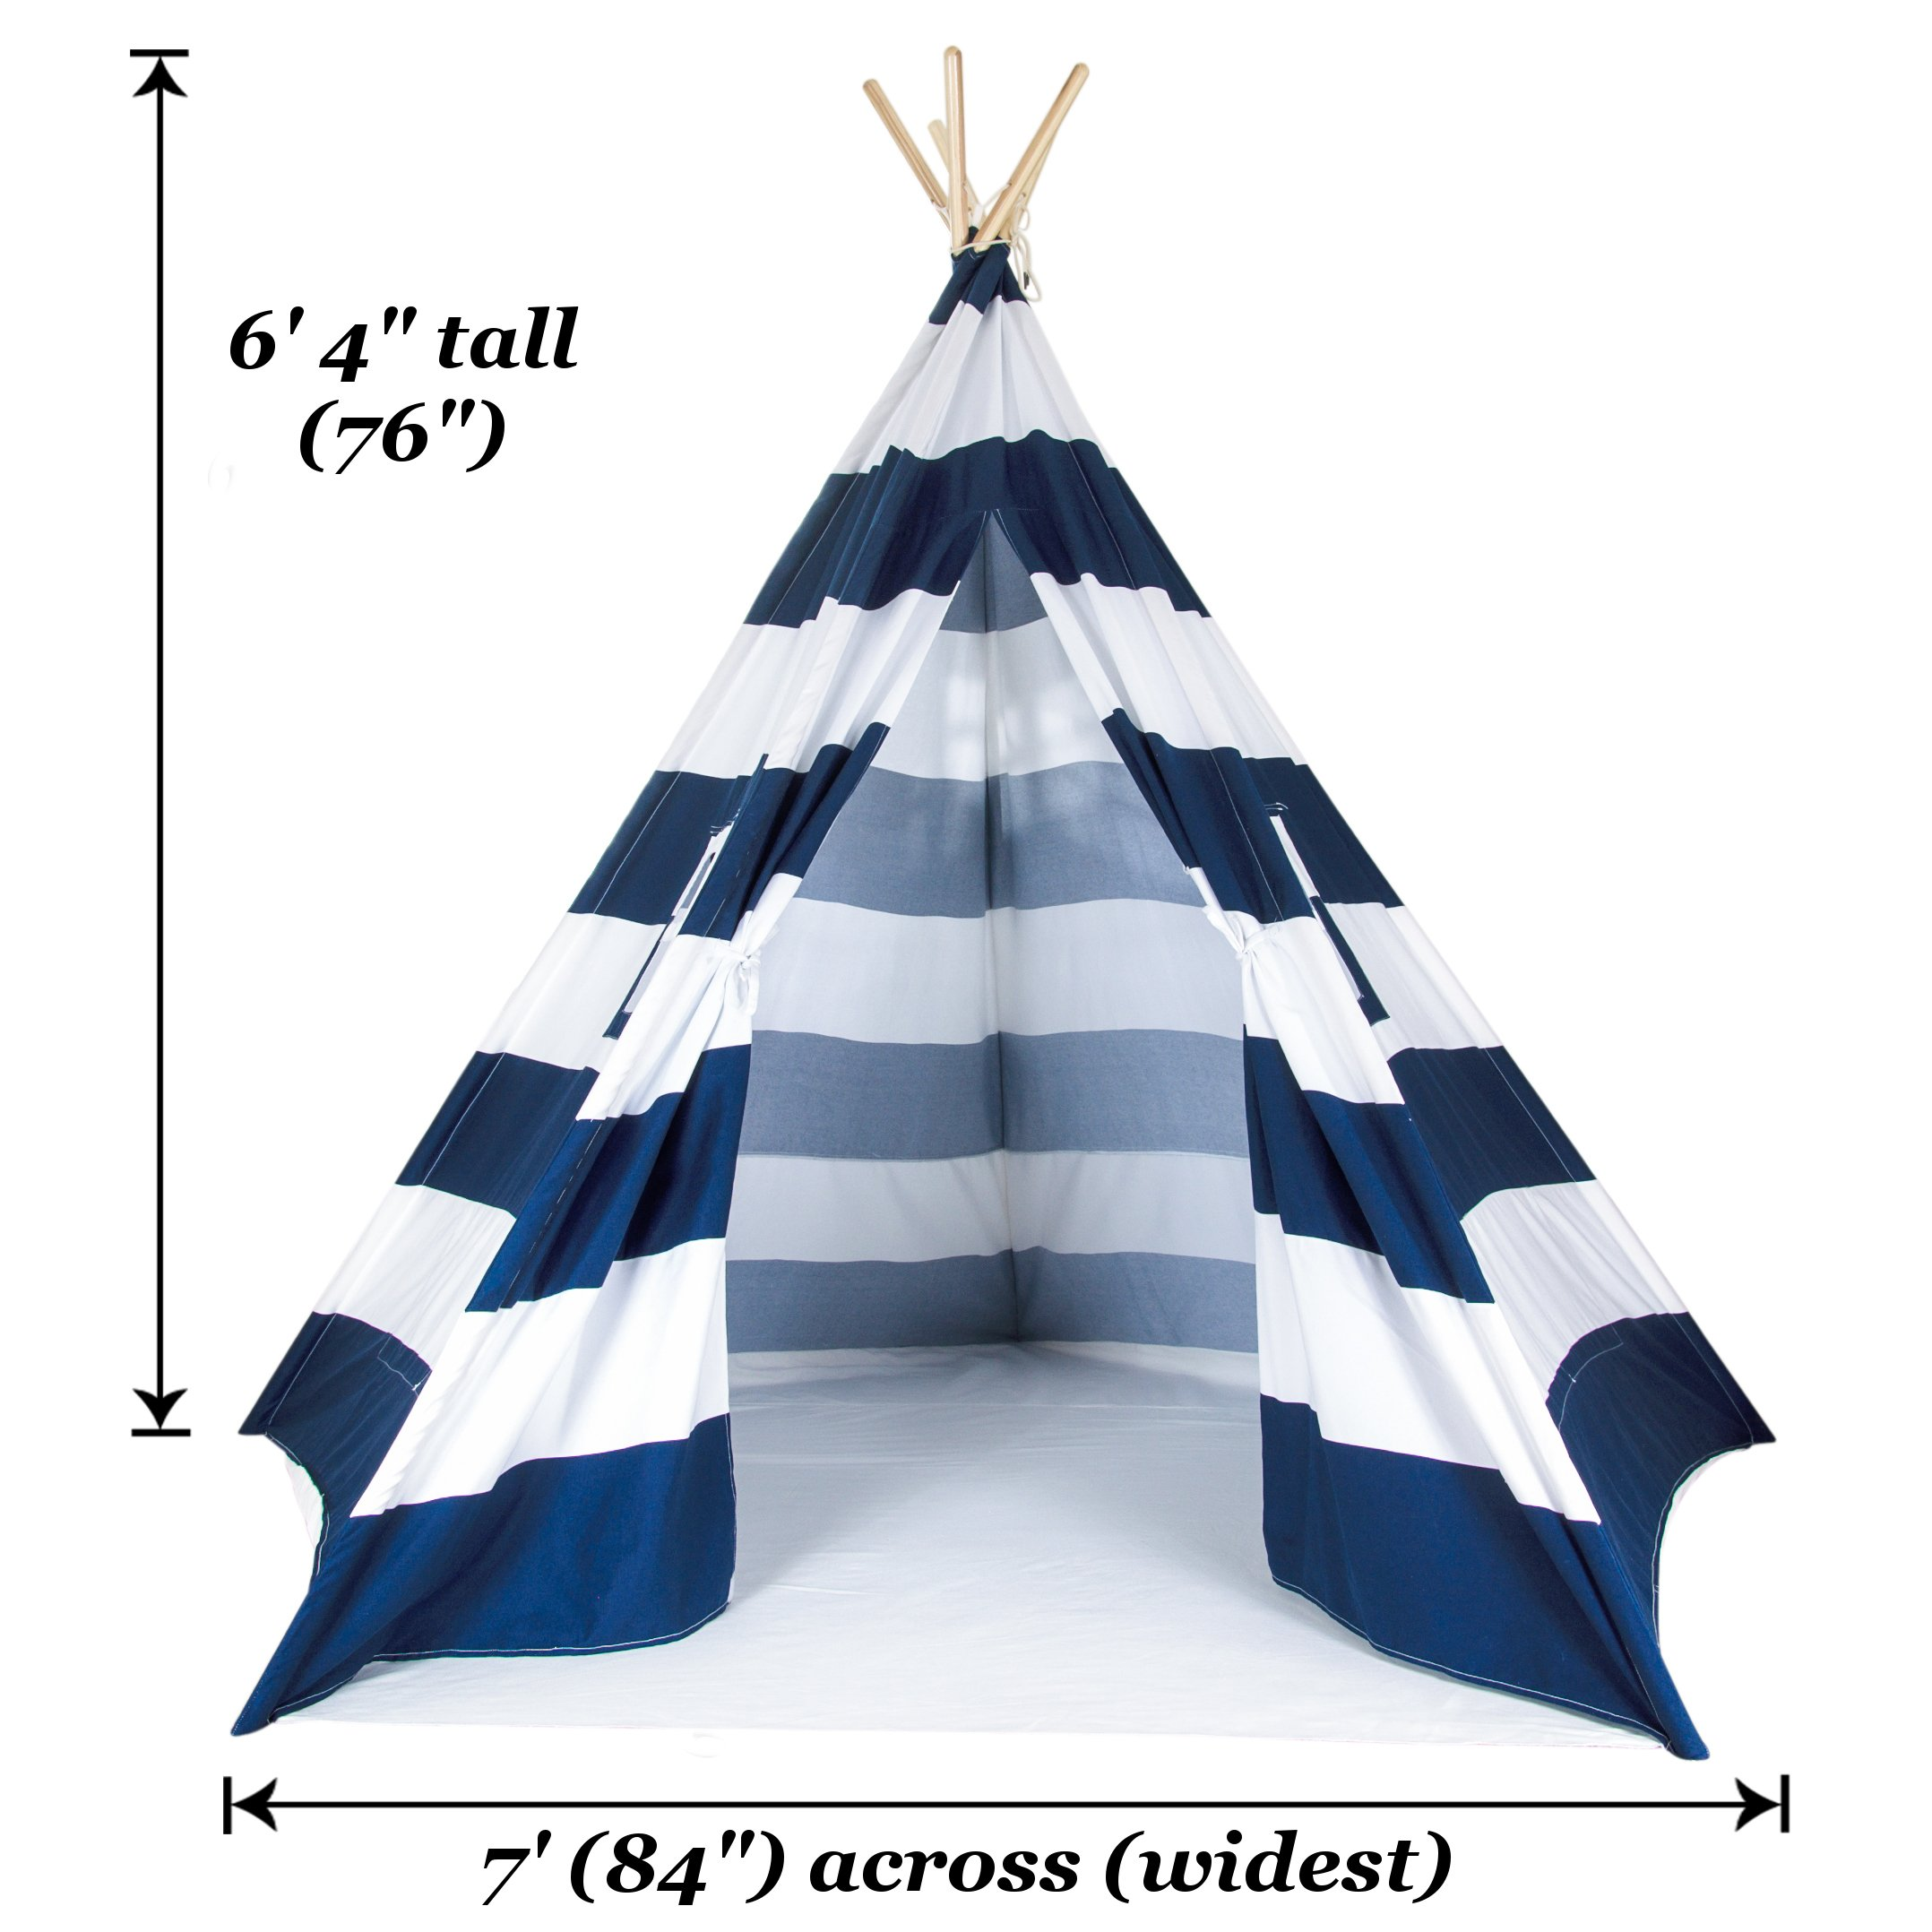 A Mustard Seed Toys Large Kids Teepee Tent, Big Enough for The Whole Family, 100% Natural Cotton Canvas Tent with Carrying Case, No Extra Chemicals (Navy) by A Mustard Seed Toys (Image #3)